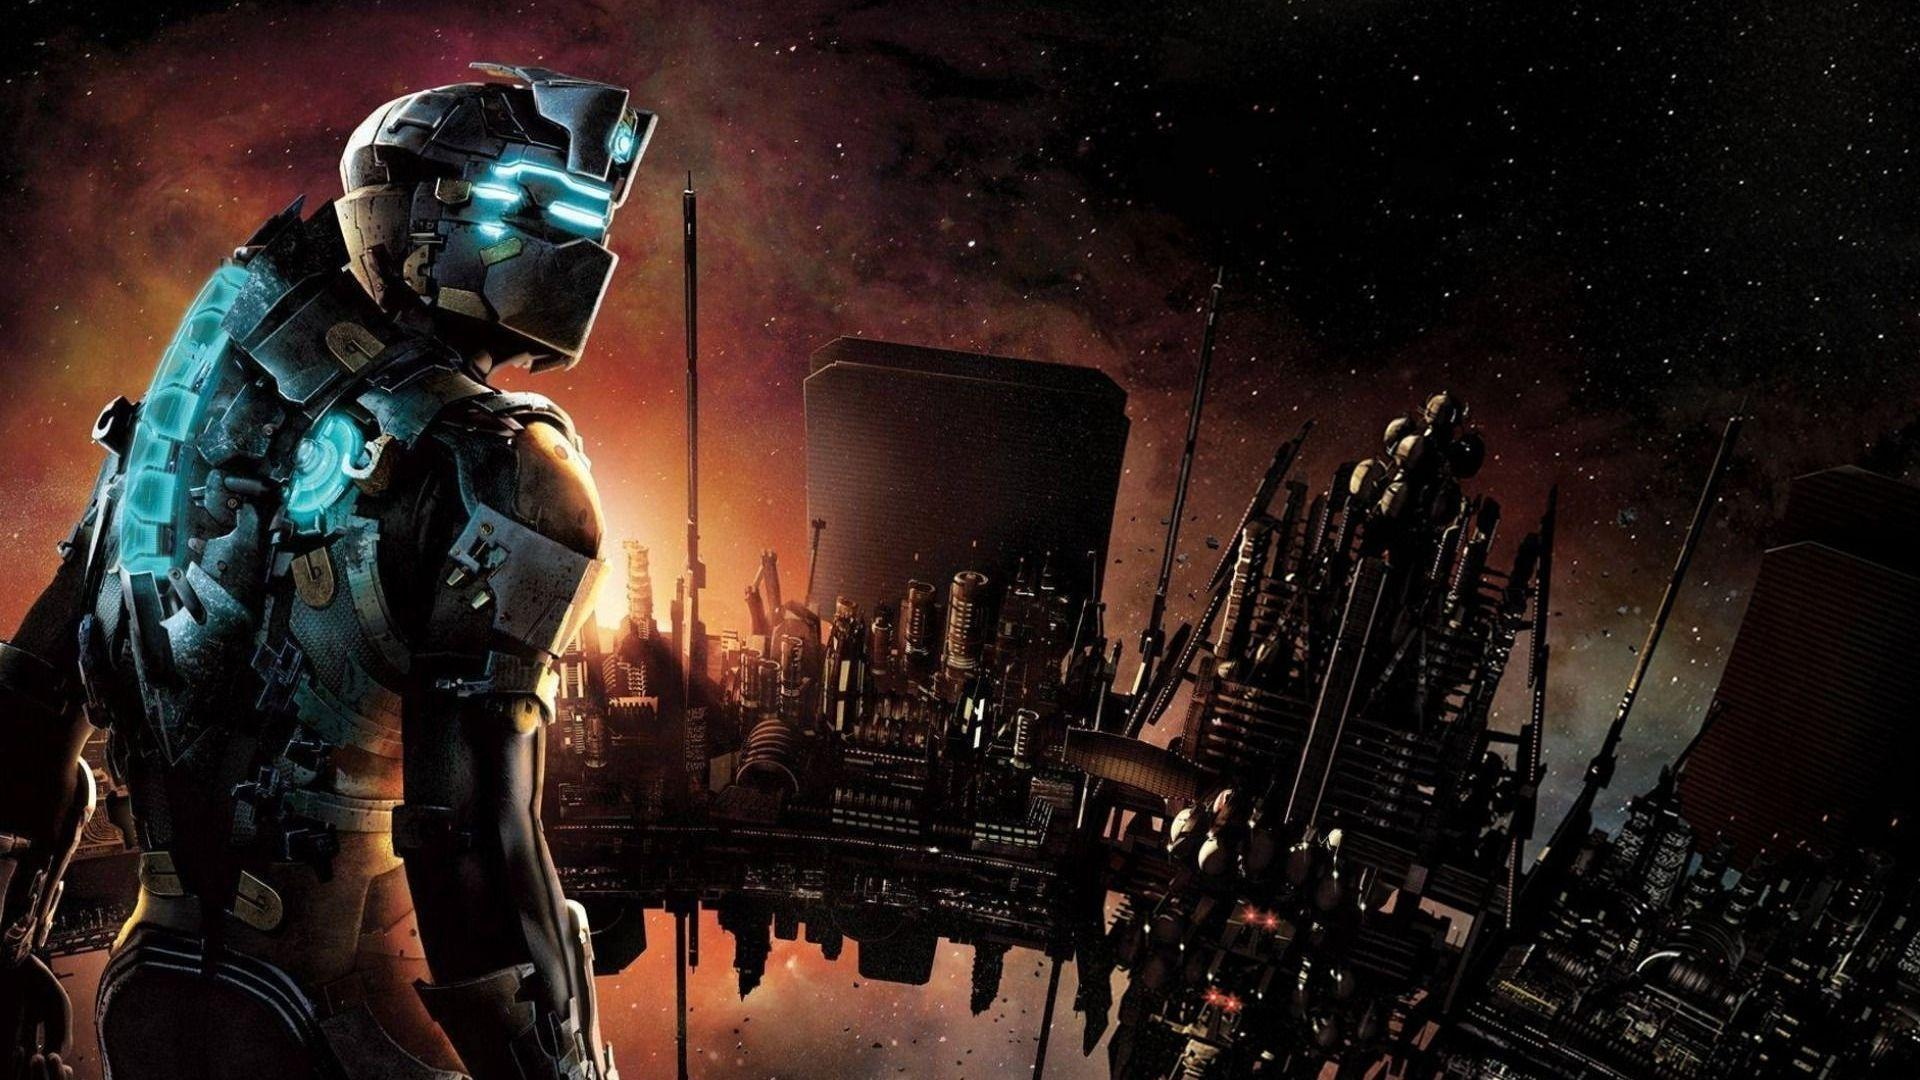 Dead space 2 wallpapers hd wallpaper cave - Dead space mobile wallpaper ...